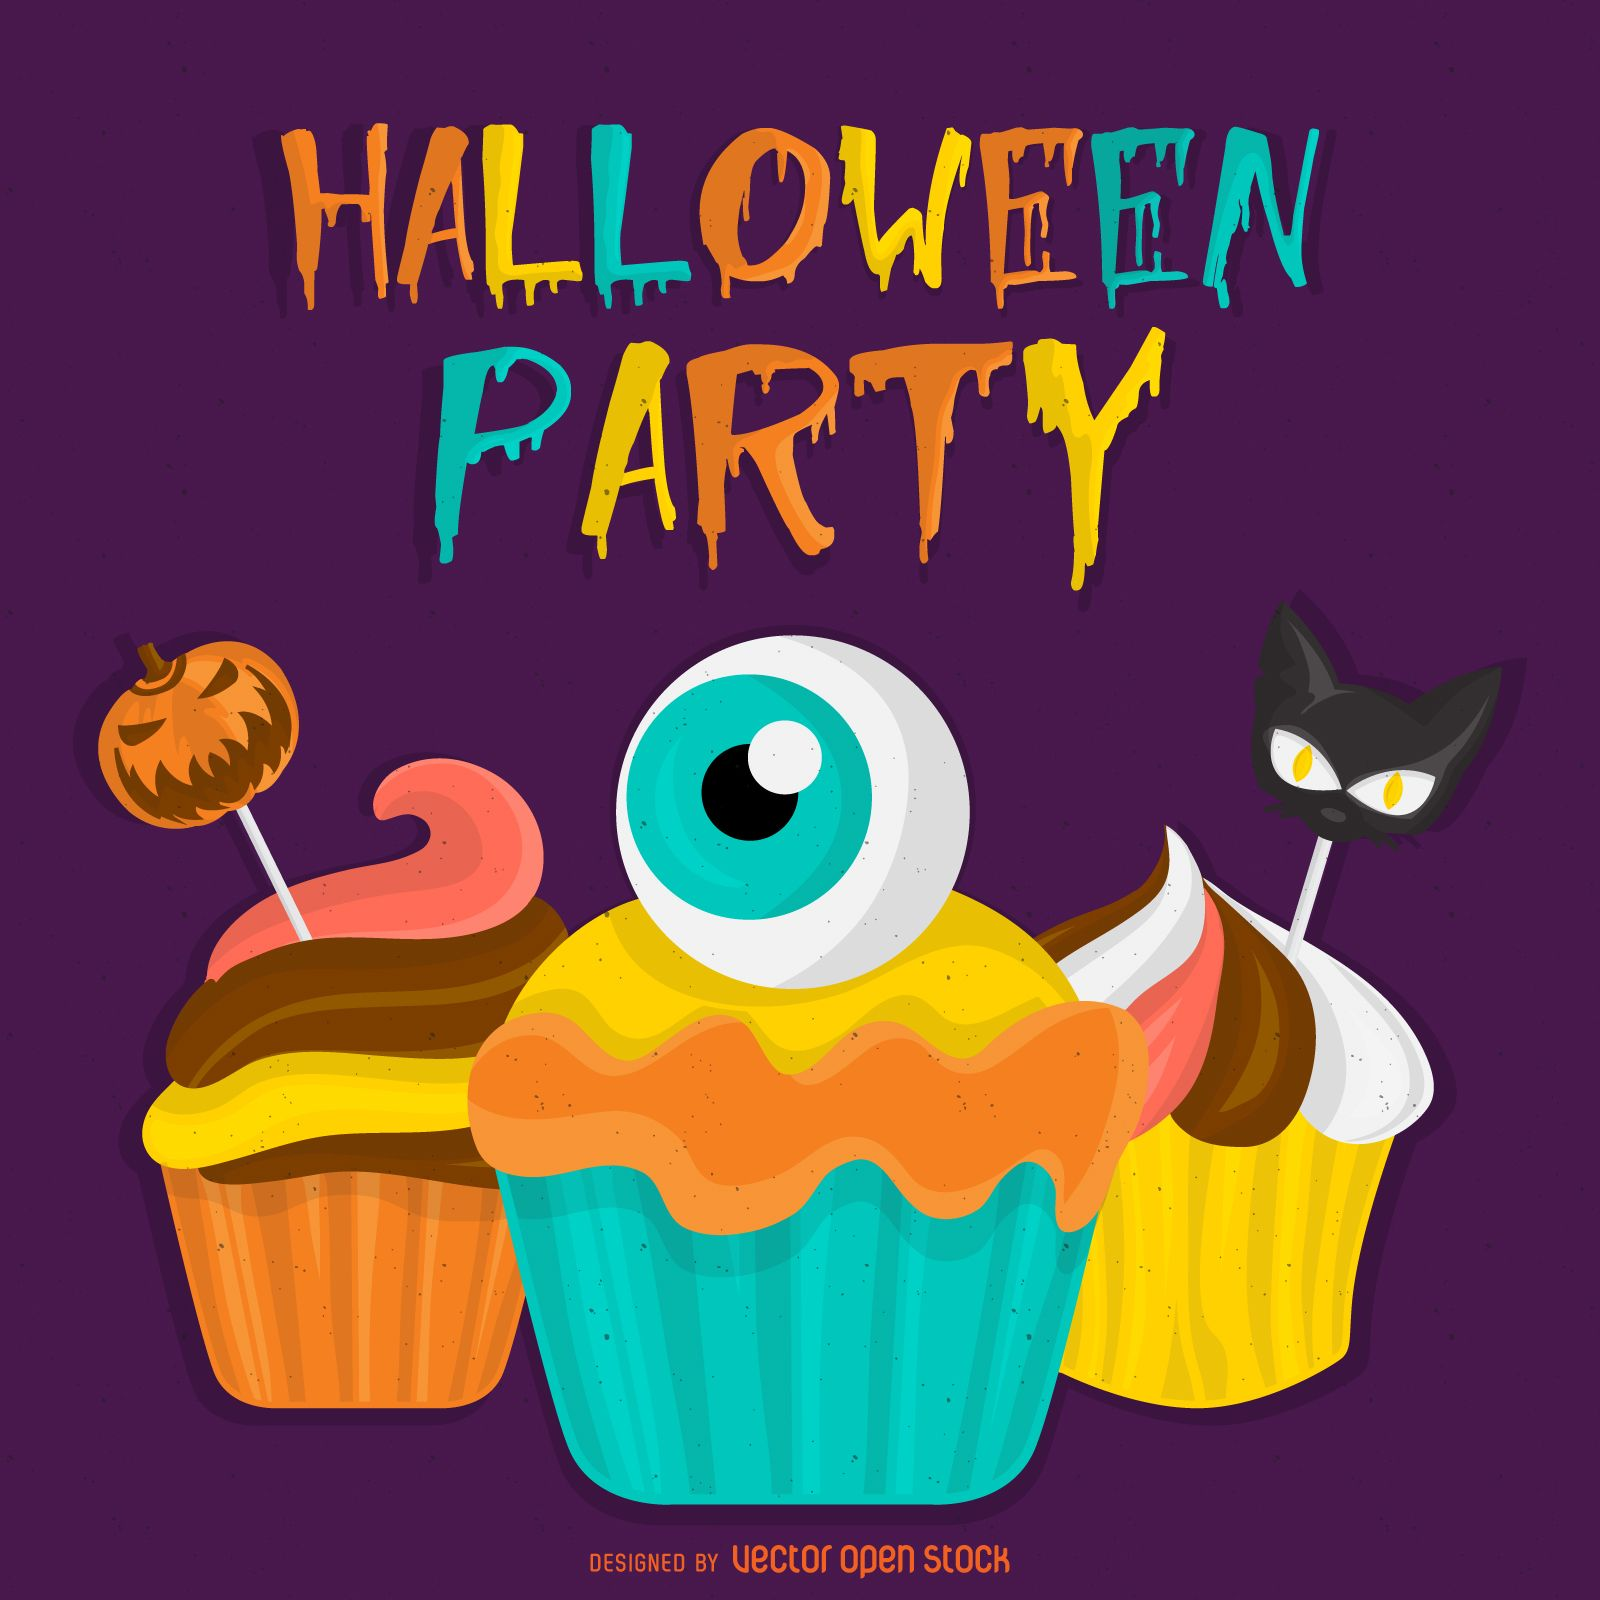 spooky halloween party sign featuring cupcakes with scary